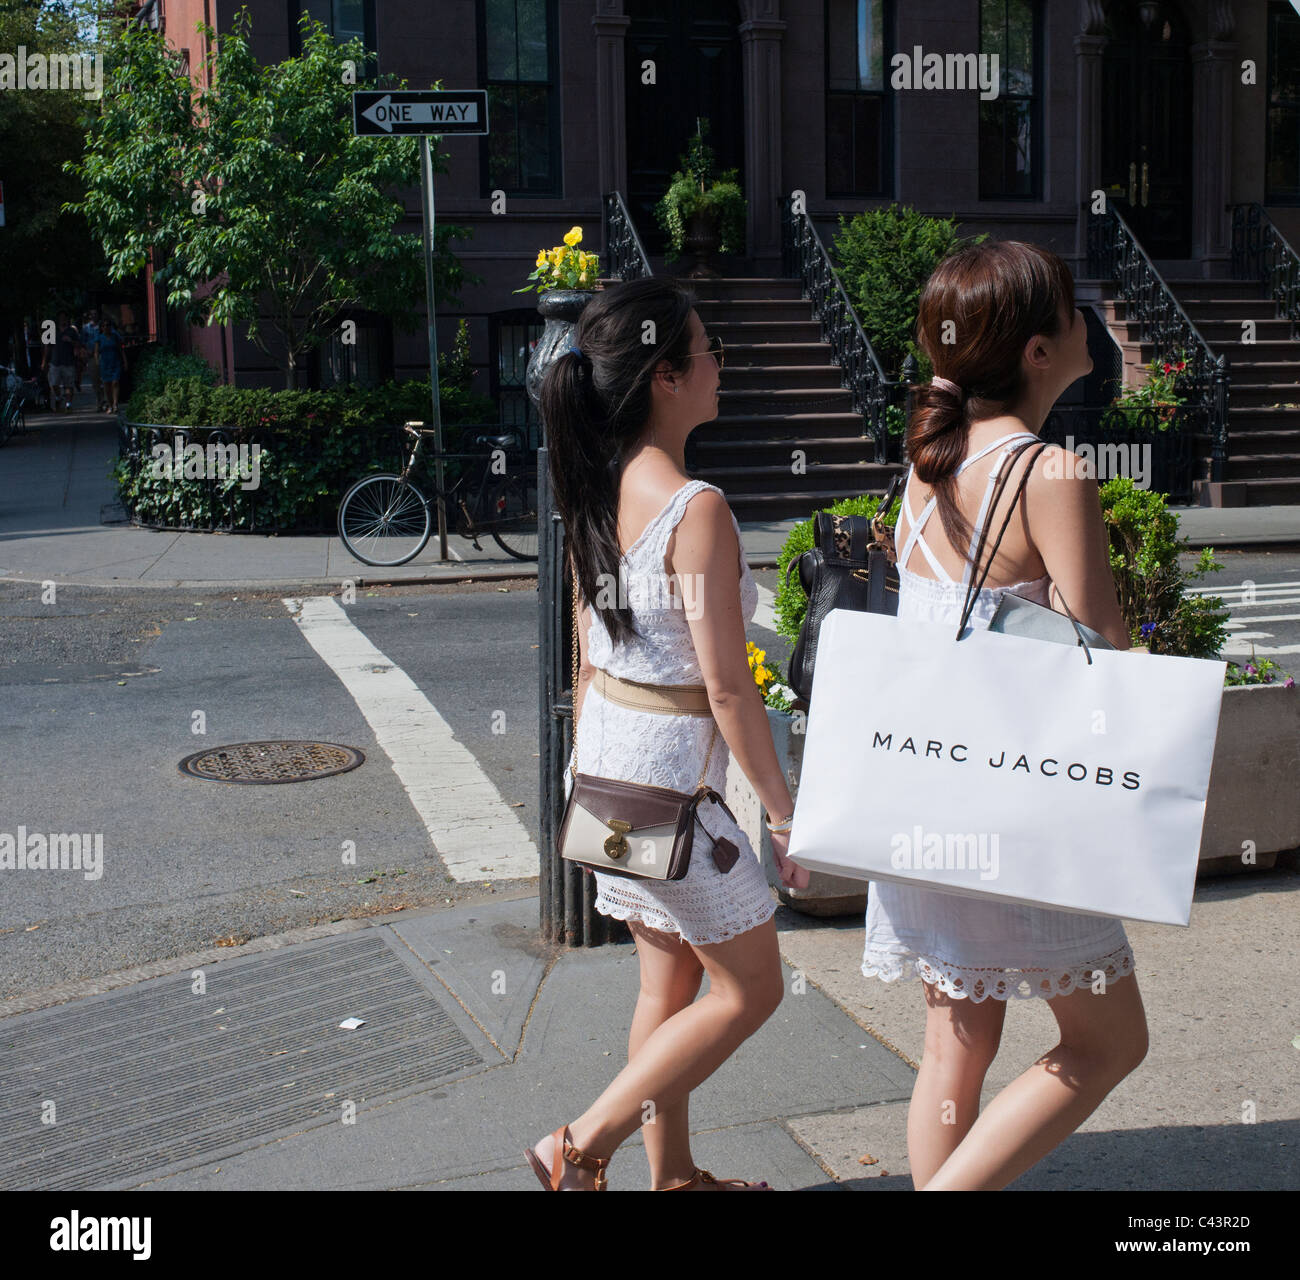 4f72e41853043 Shoppers leave a Marc Jacobs store on Bleecker Street in Greenwich Village  in New York -